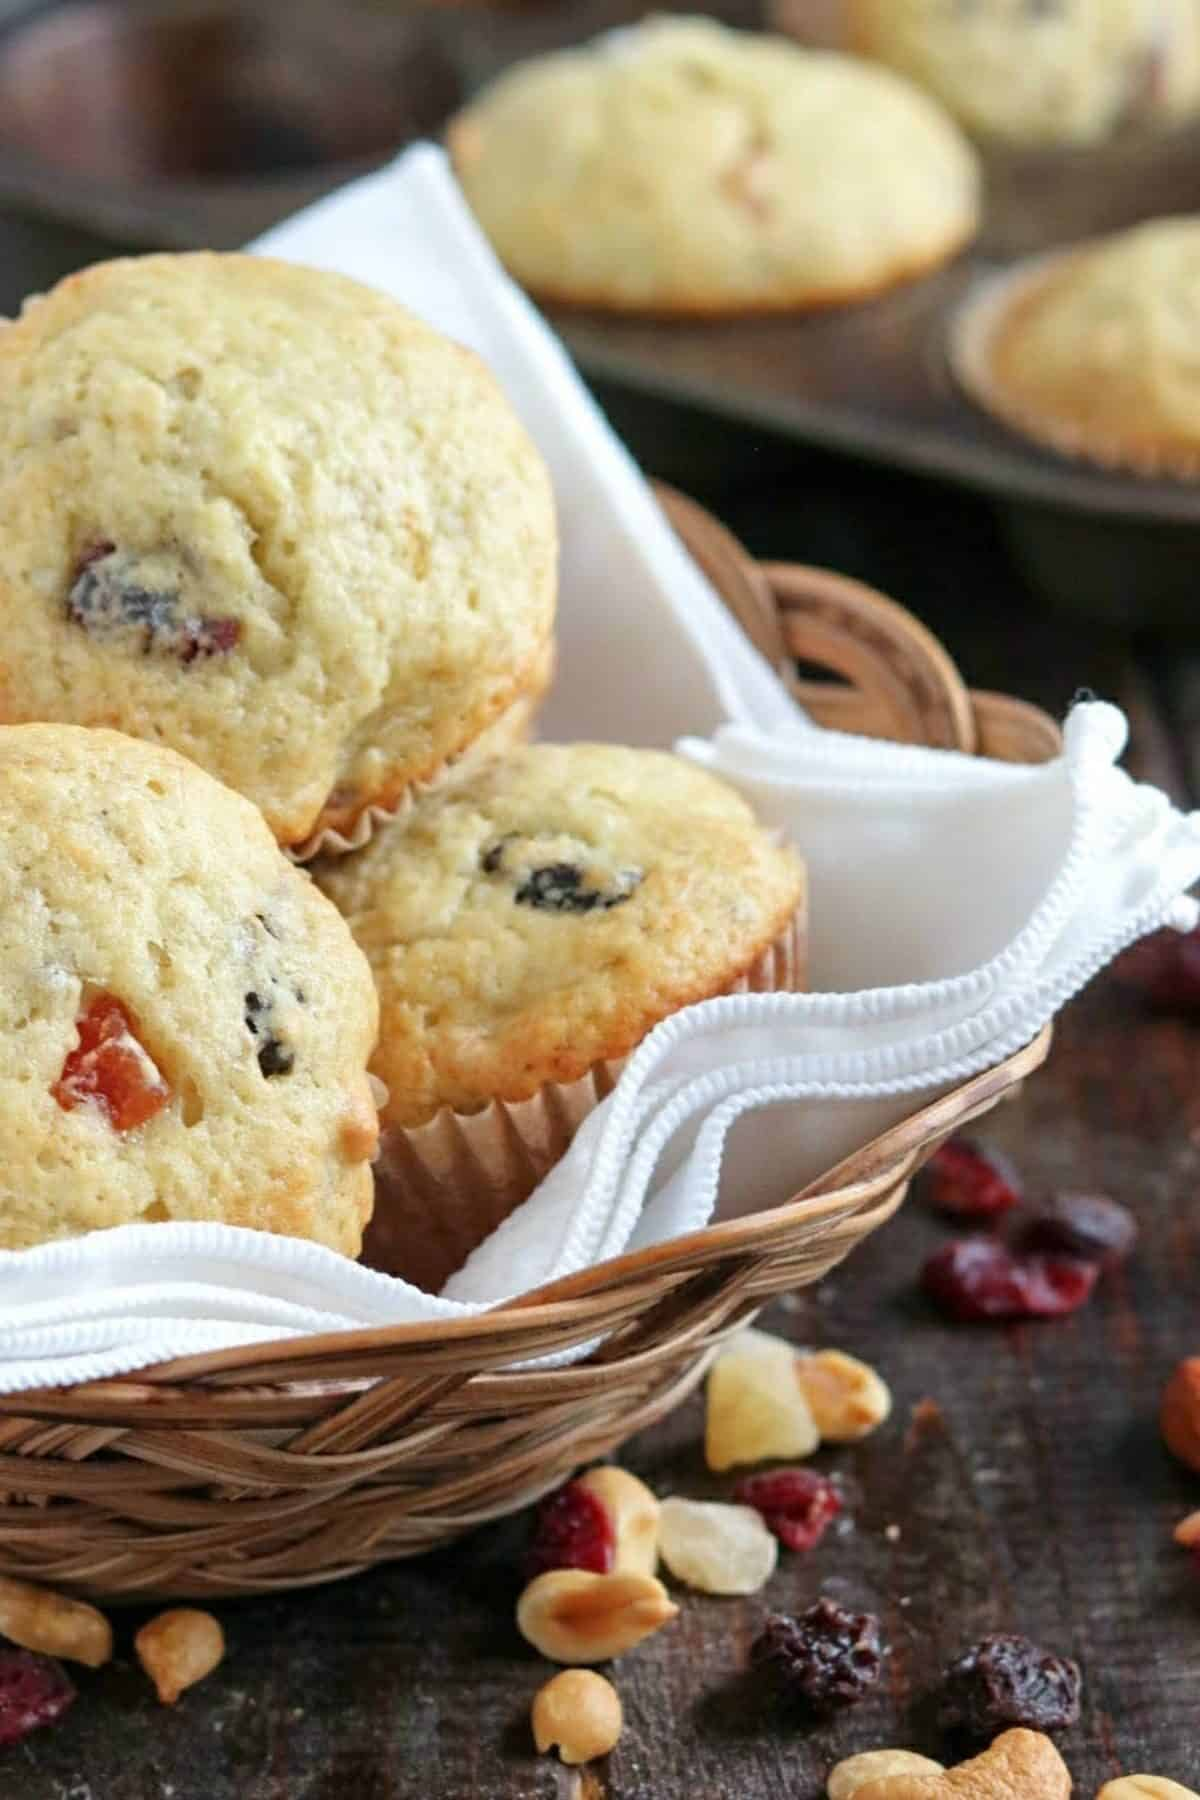 muffins in a basket with fruit/nuts on a wooden board